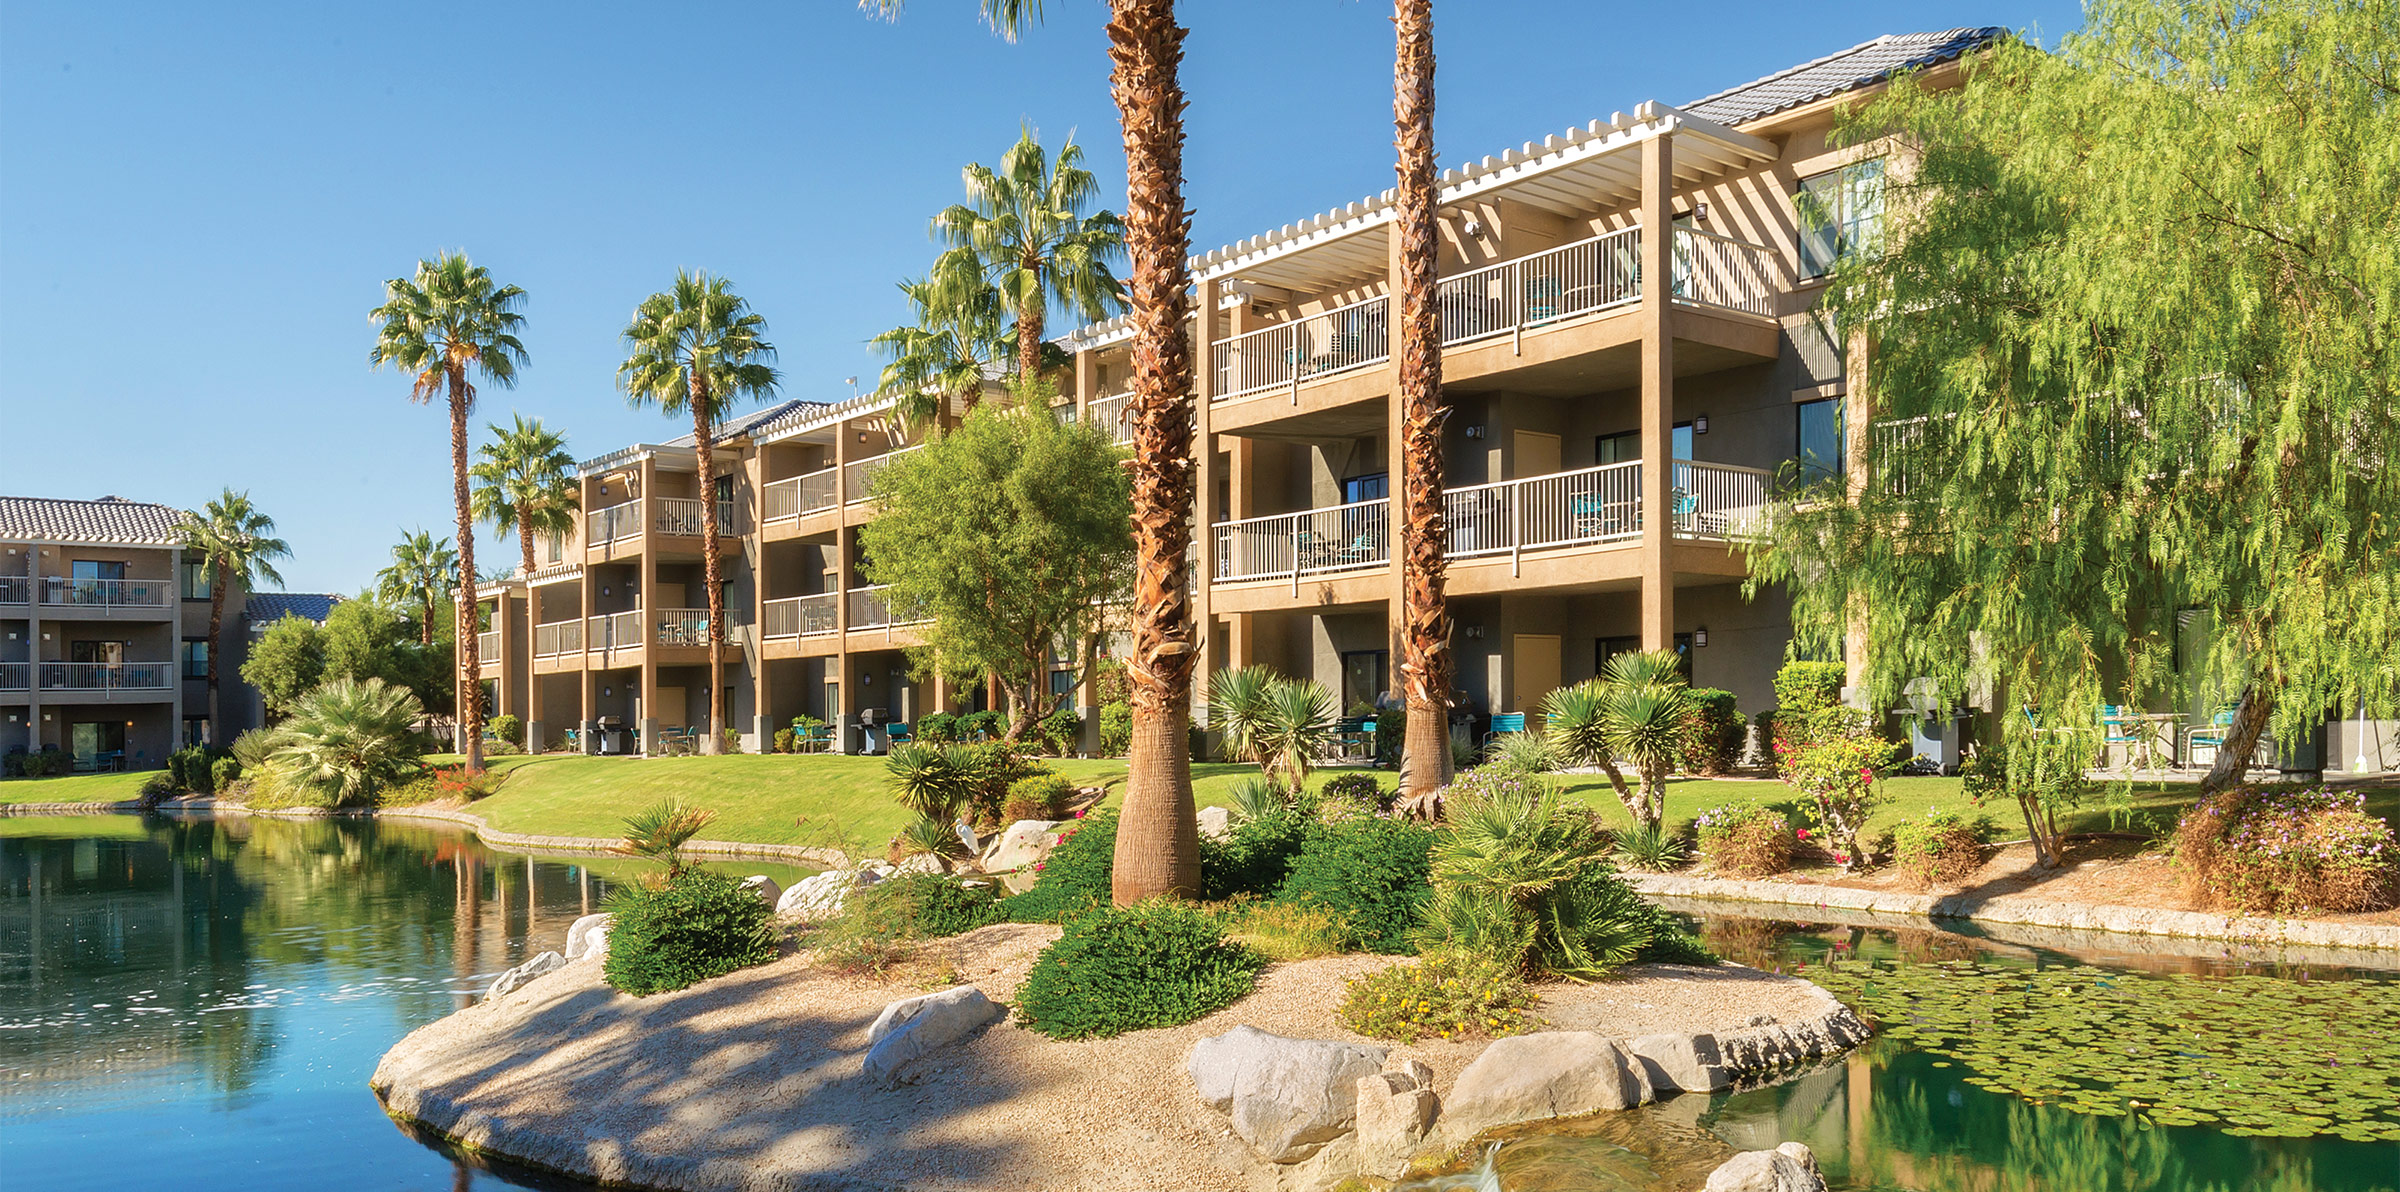 Apartment 2 Bedroom 2 Bath In Indio  CA   Palm Springs  5 miles from COACHELLA photo 18333122